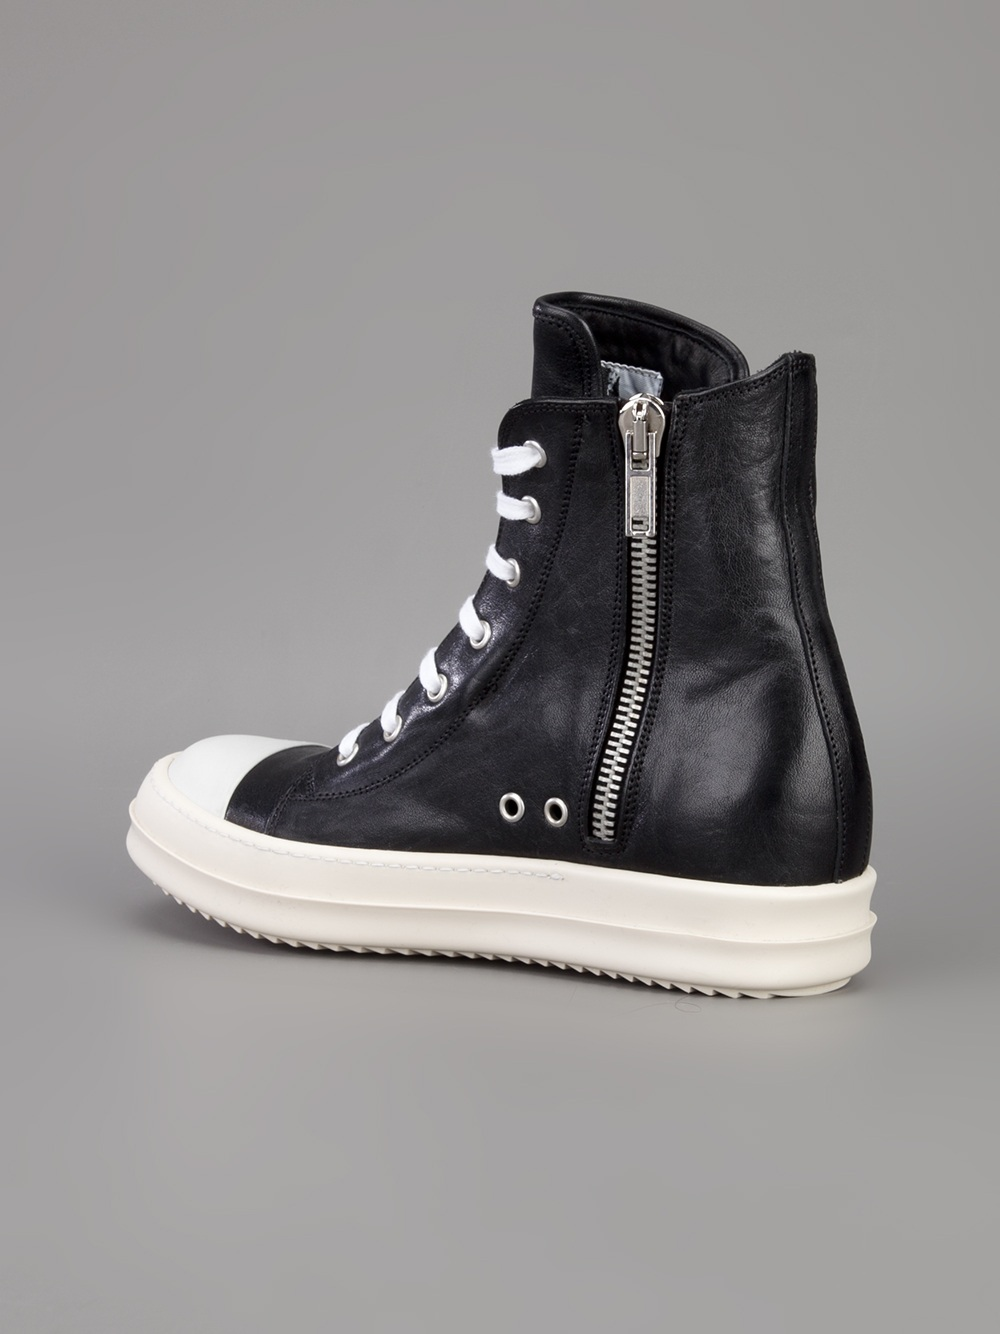 Rick Owen Ramones | Rick Owens Ramones Low | Rick Owens Clothing Men